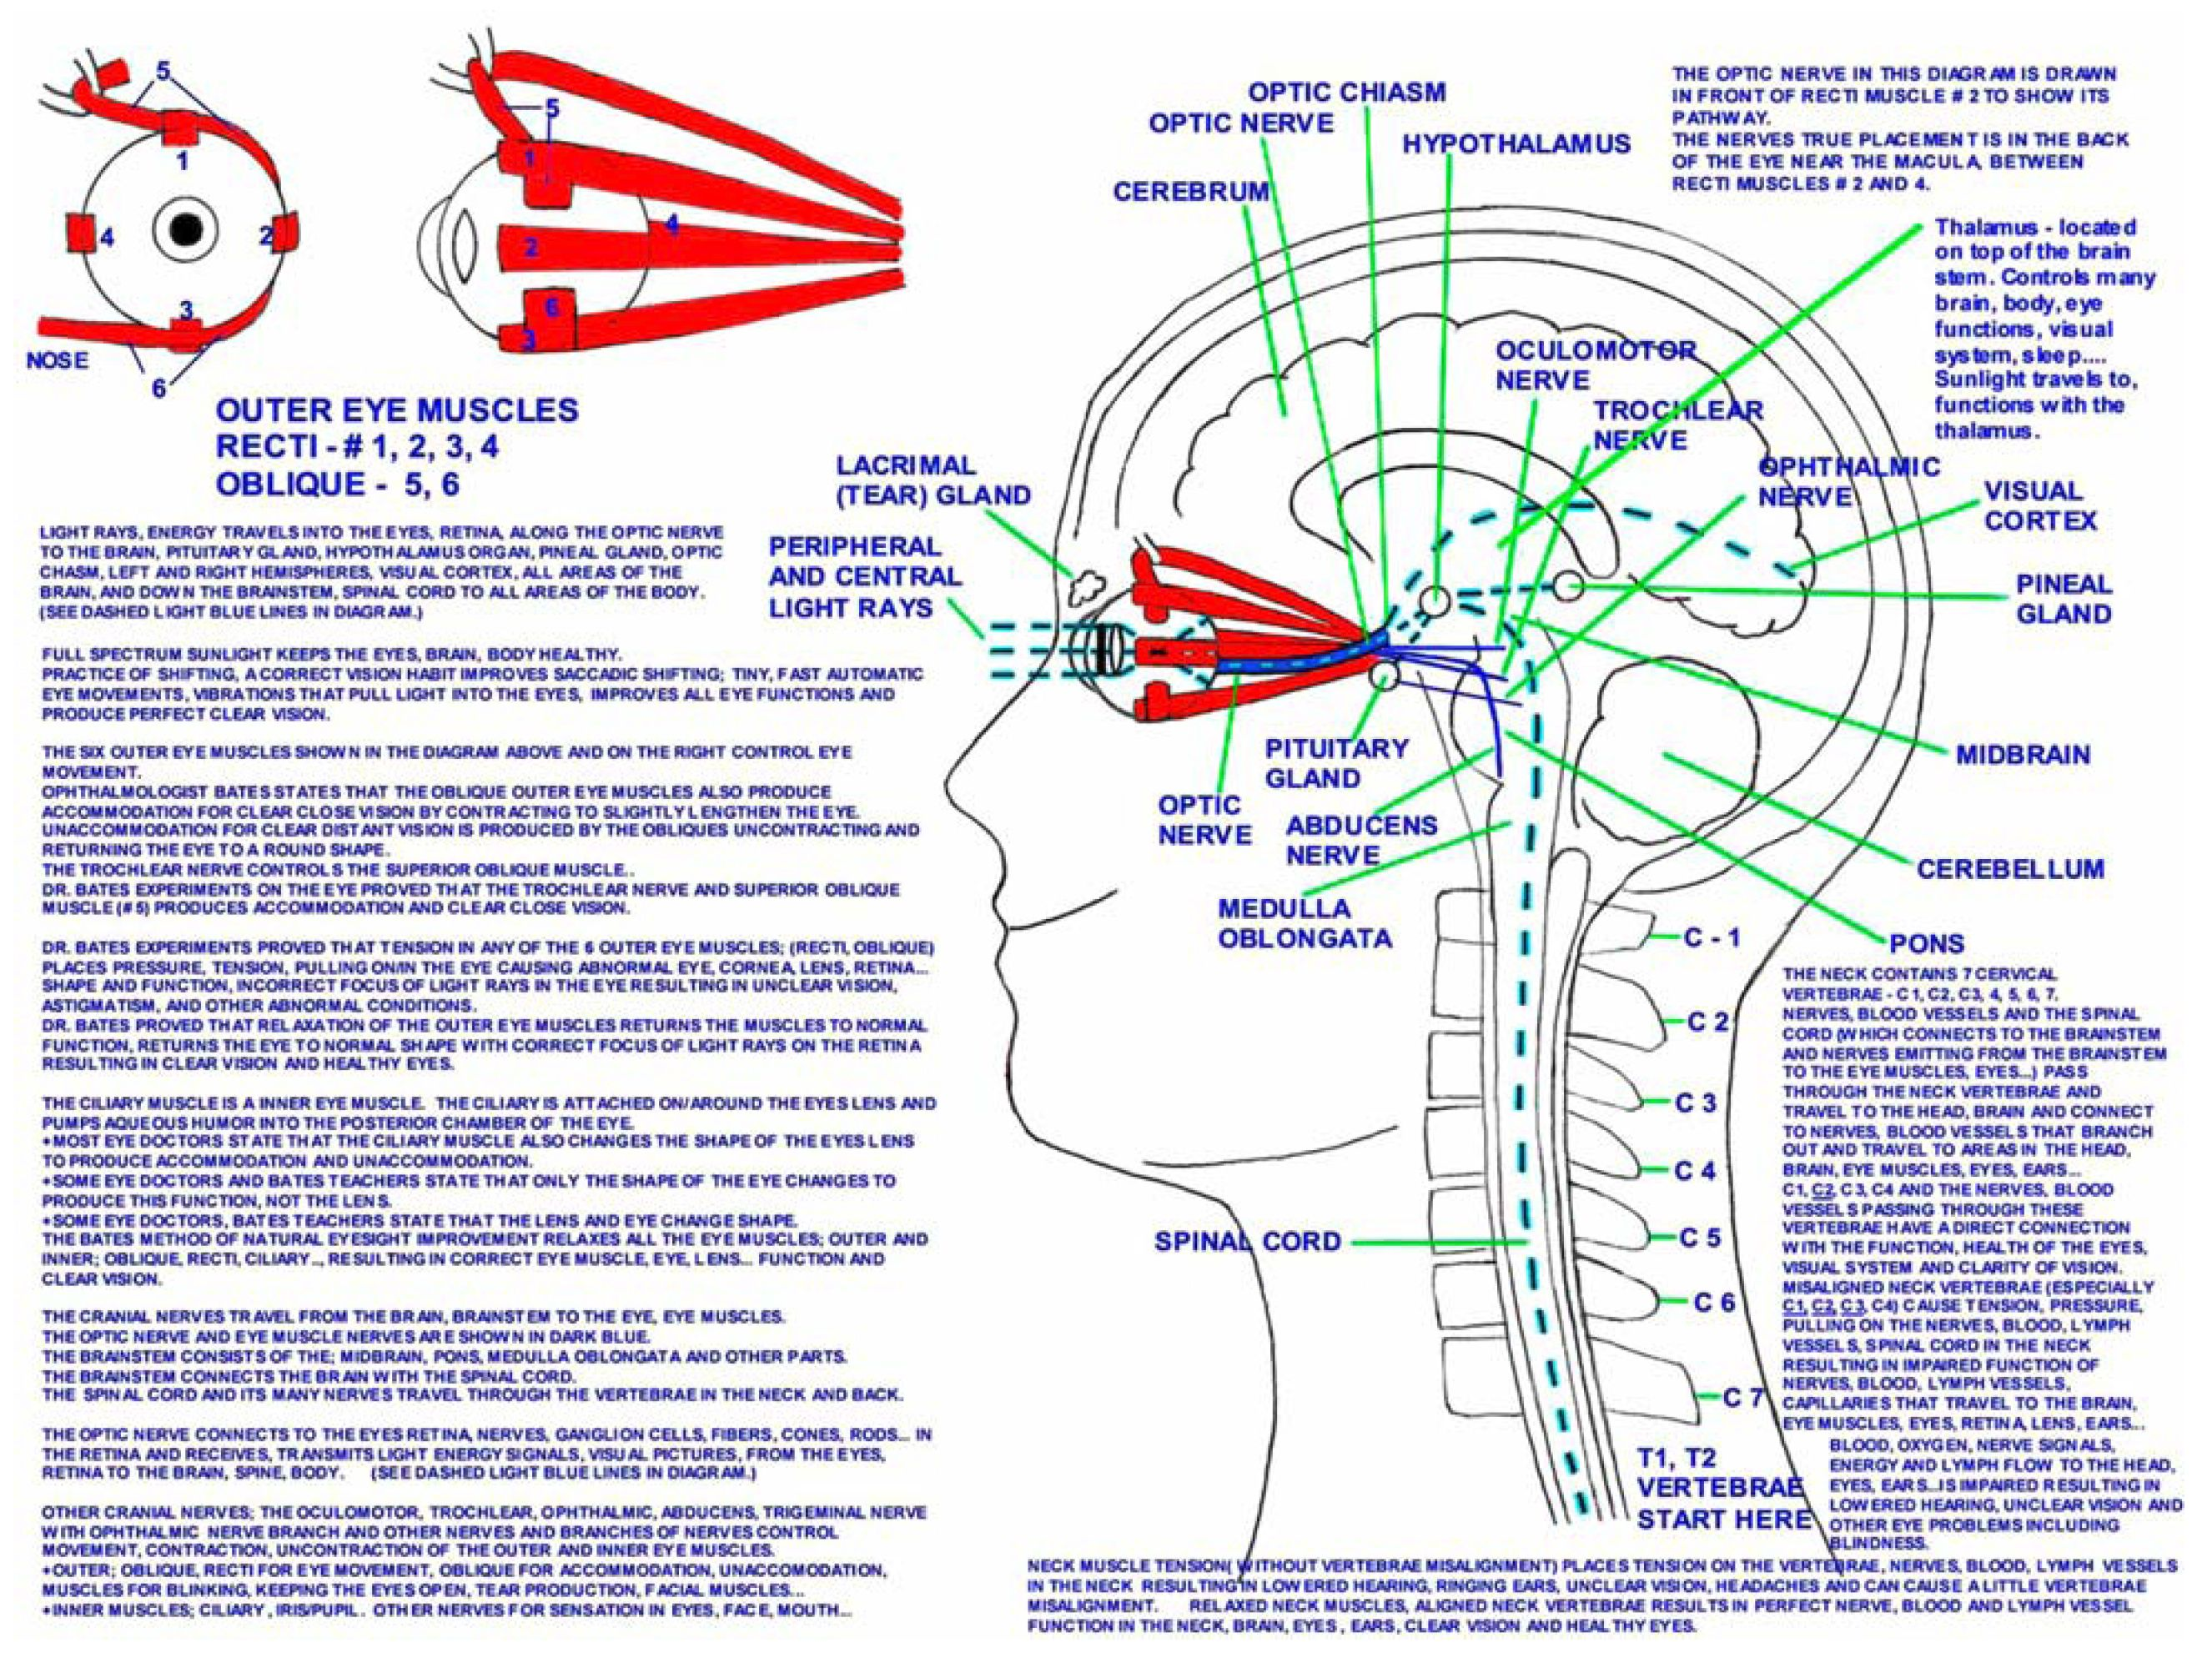 physicians professional eye chart with rods and cones rods in your eyes rod and cone eye diagram [ 2652 x 2012 Pixel ]